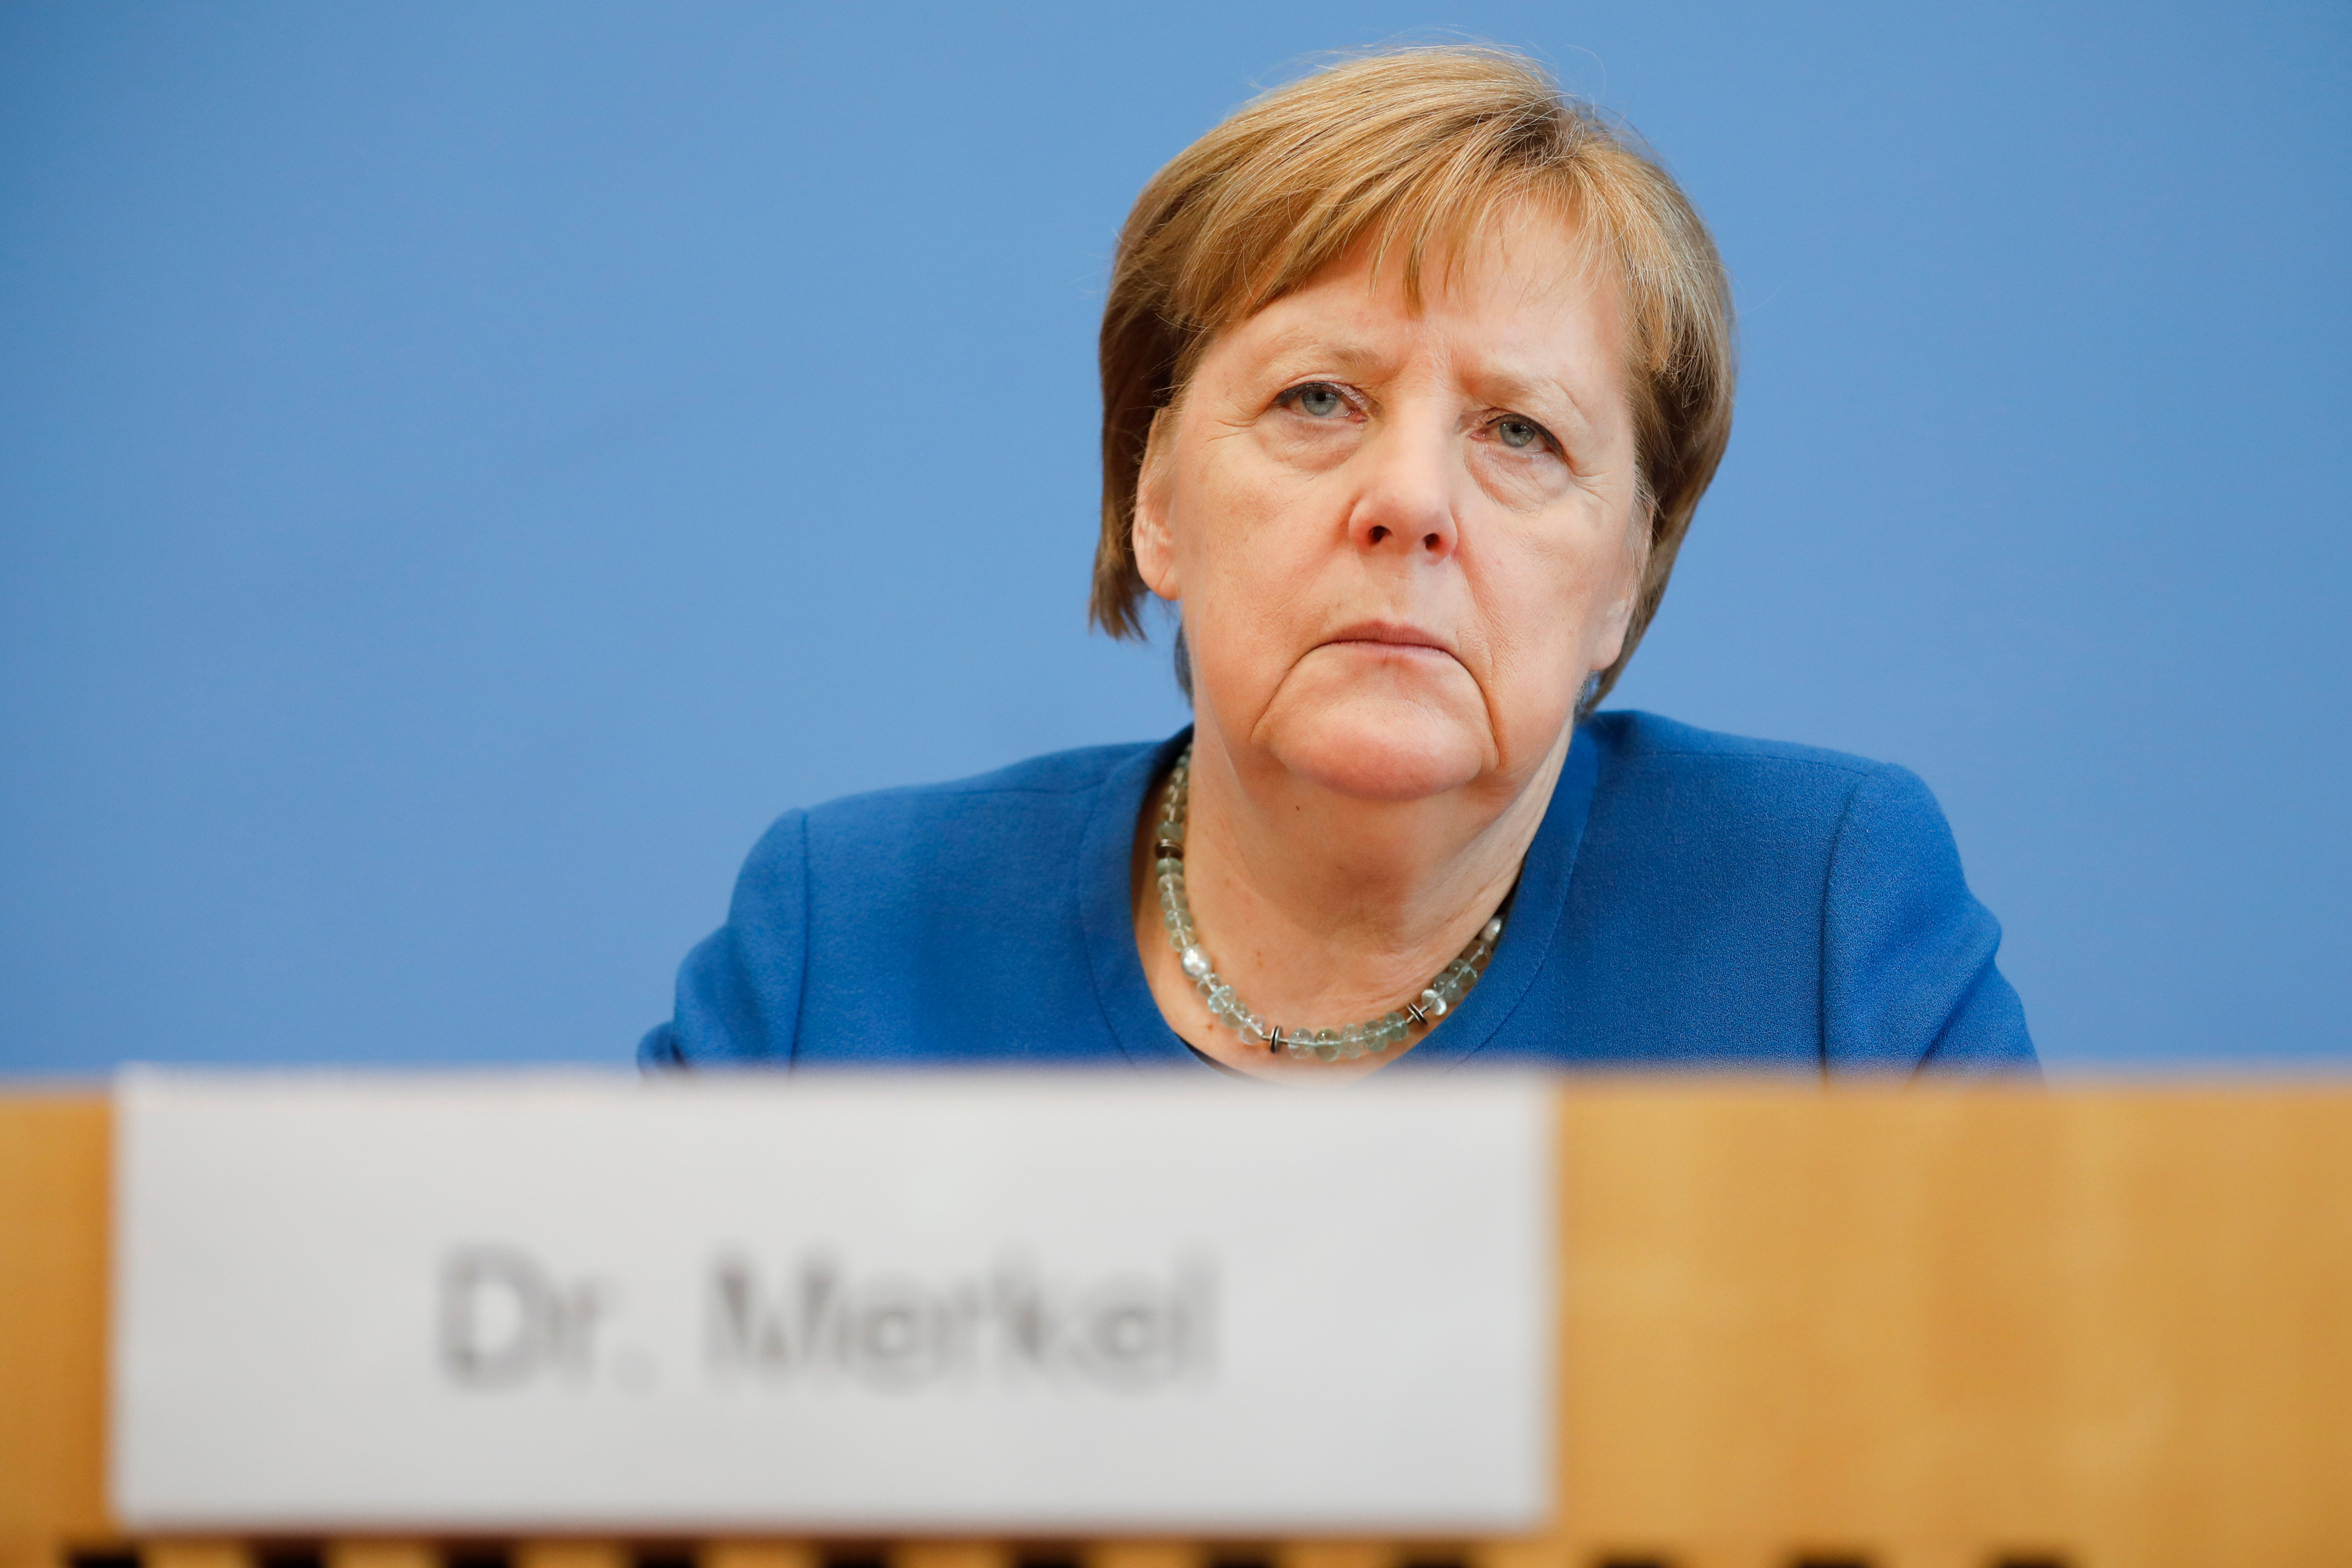 Up to 70% of Germans could end up infected by virus, Merkel warns ...